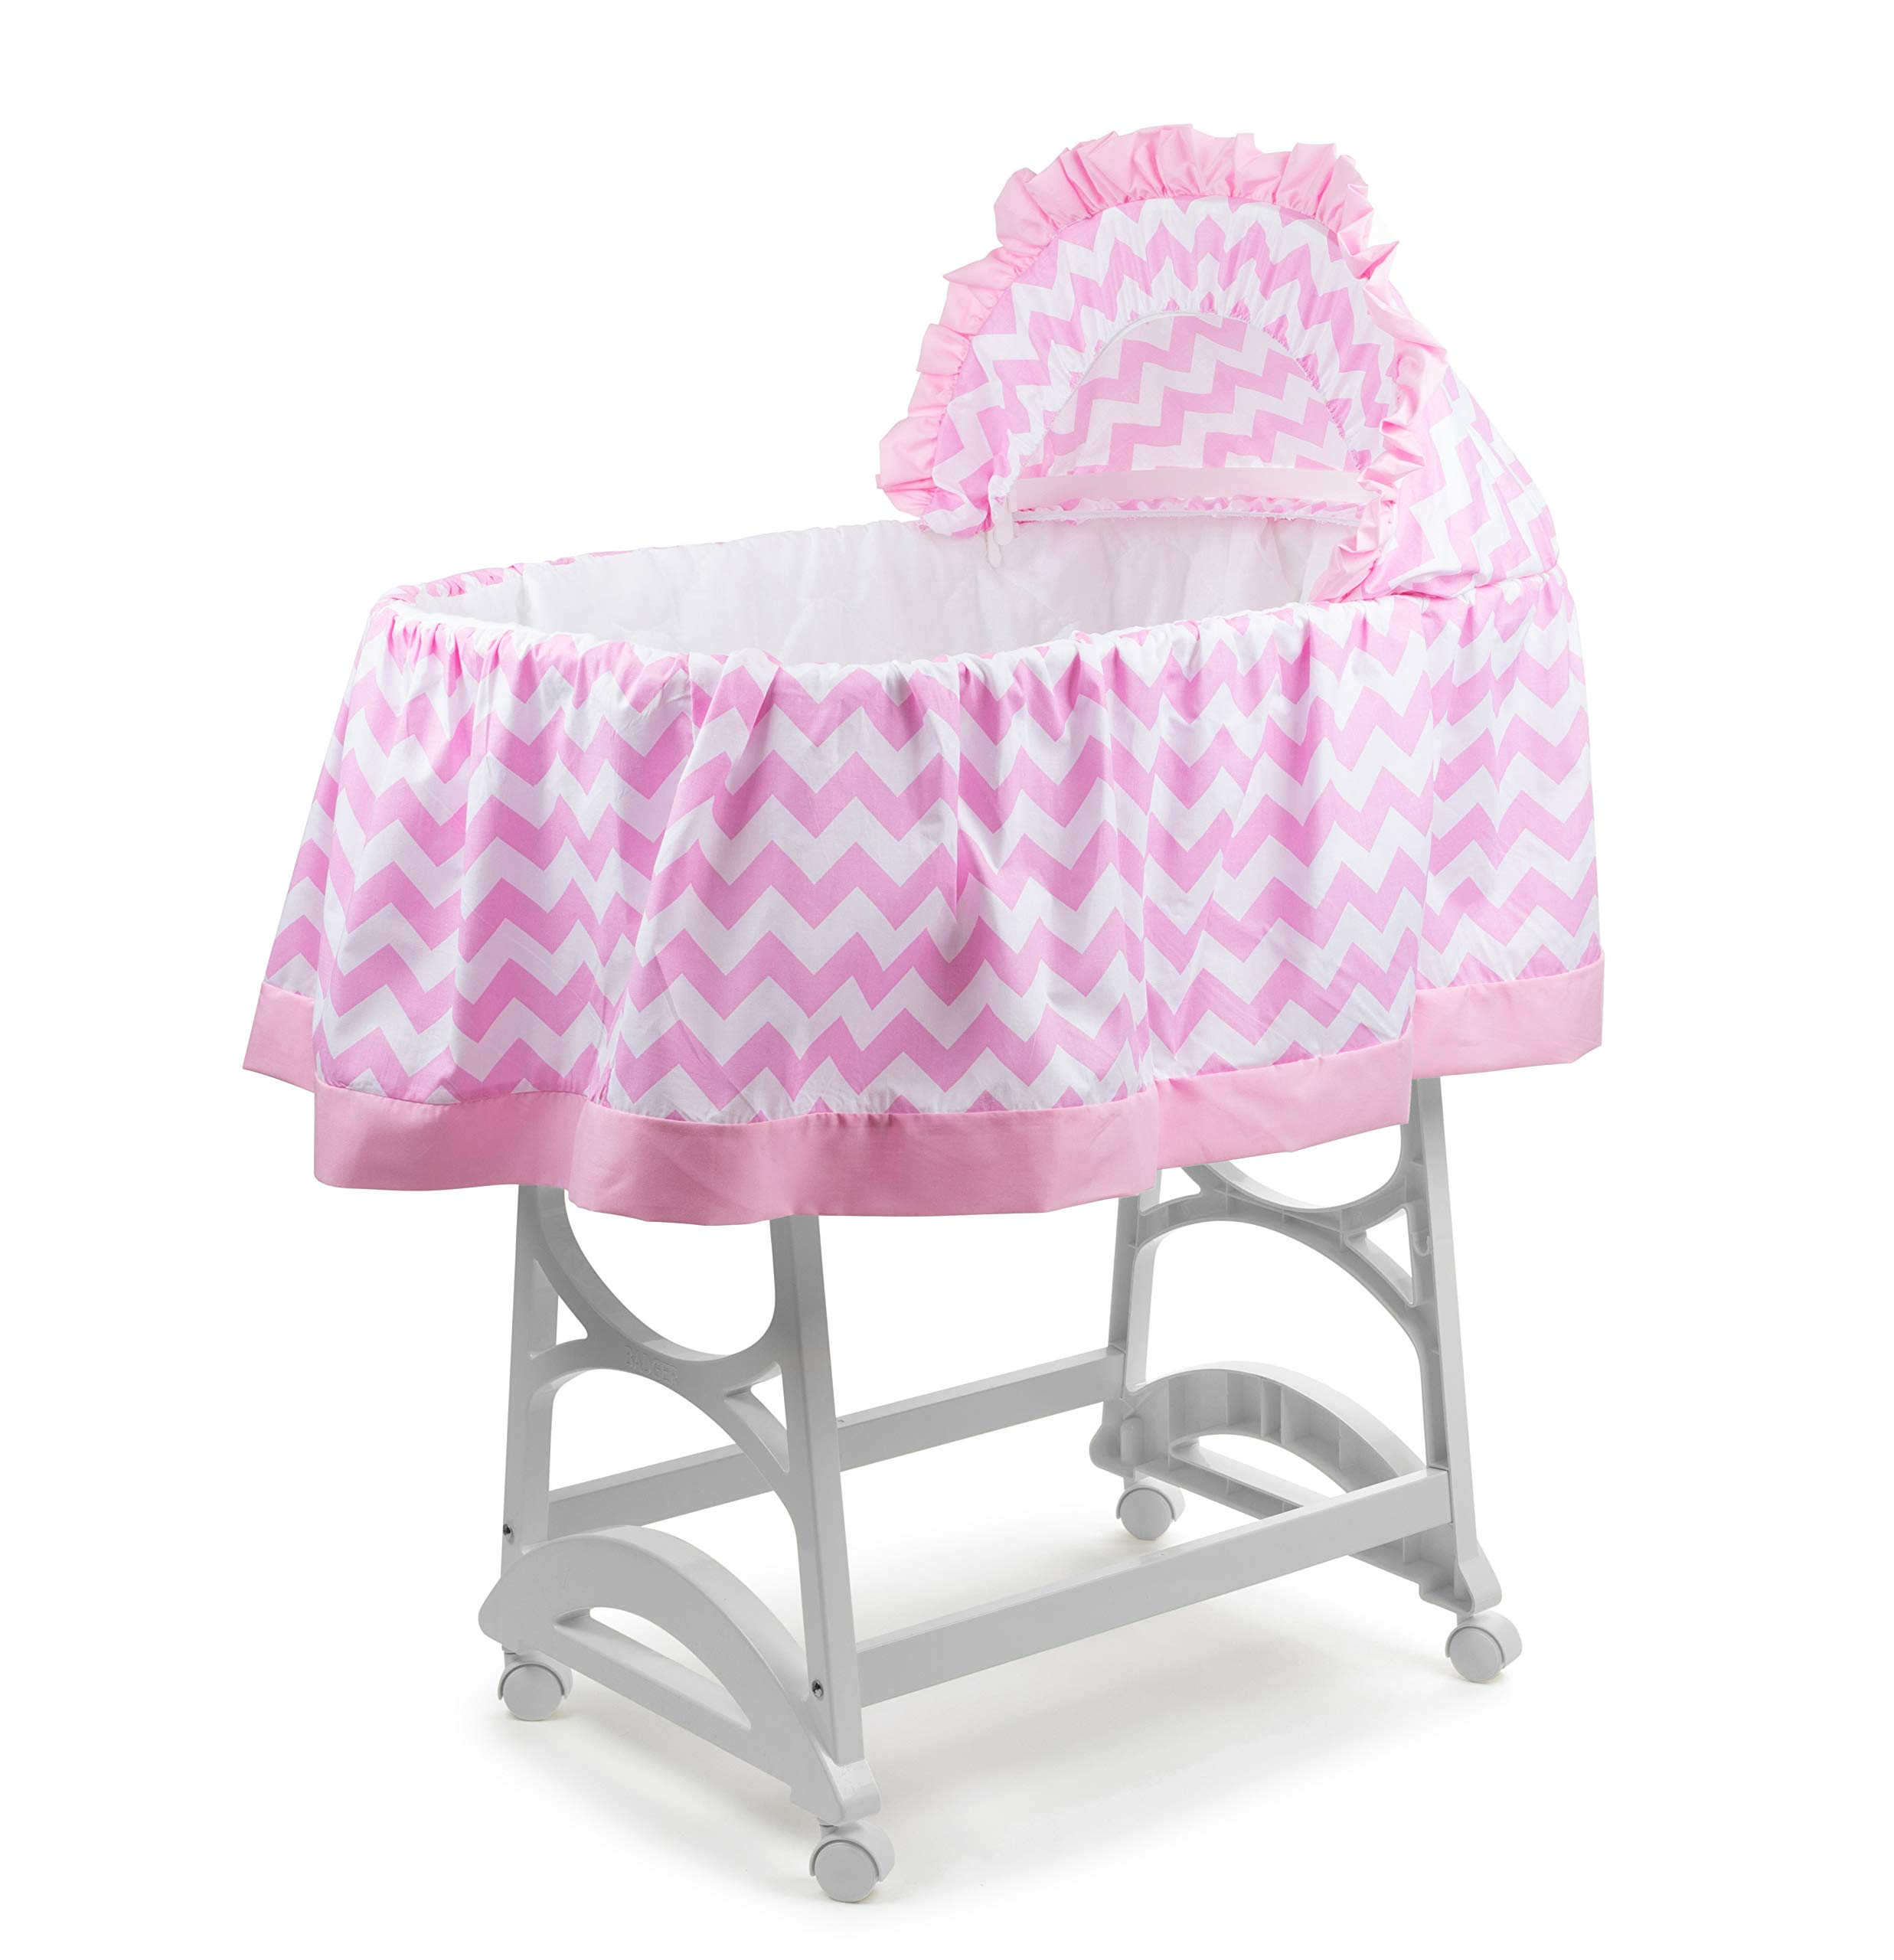 aBaby Chevron Short Bassinet Skirt, Pink, Small by Ababy